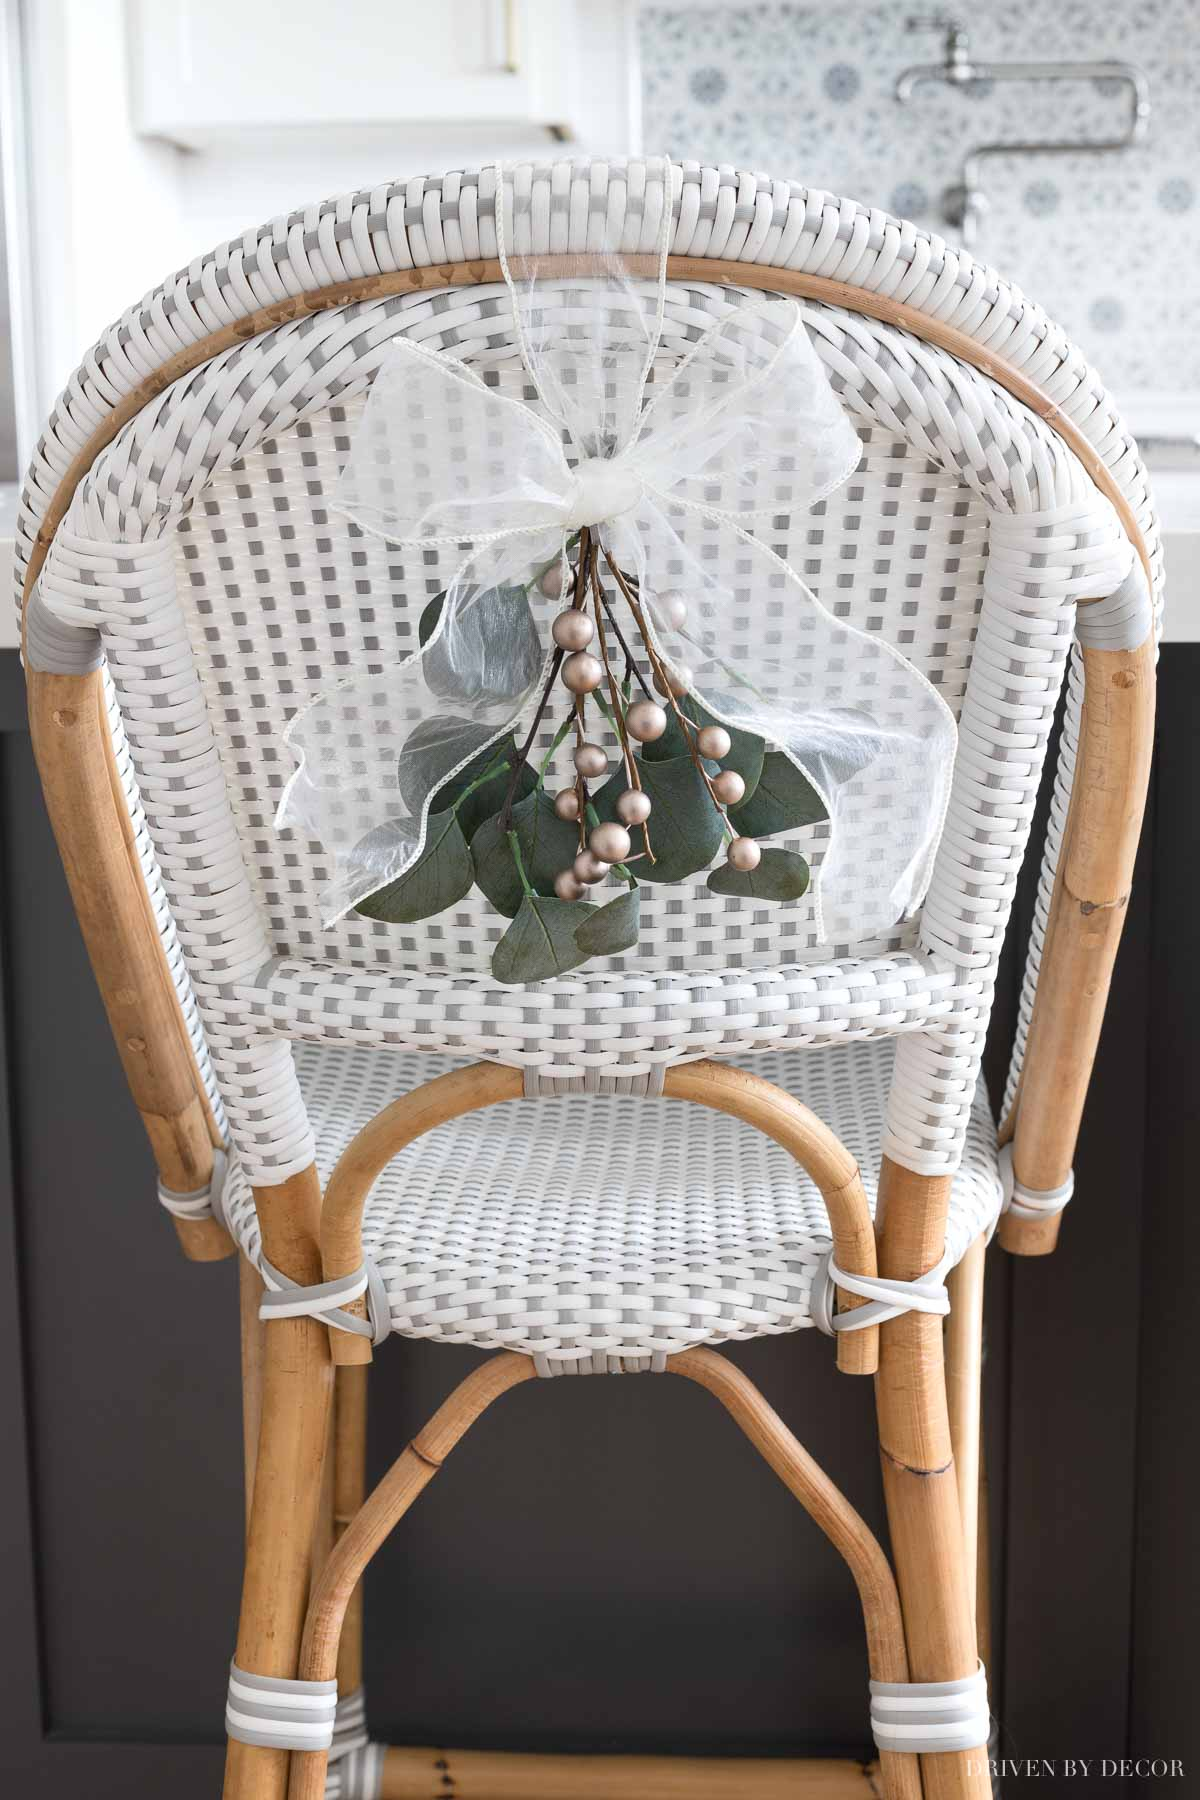 Mini greenery swags tied with a bow are the perfect simple Christmas decorations for the backs of our chairs